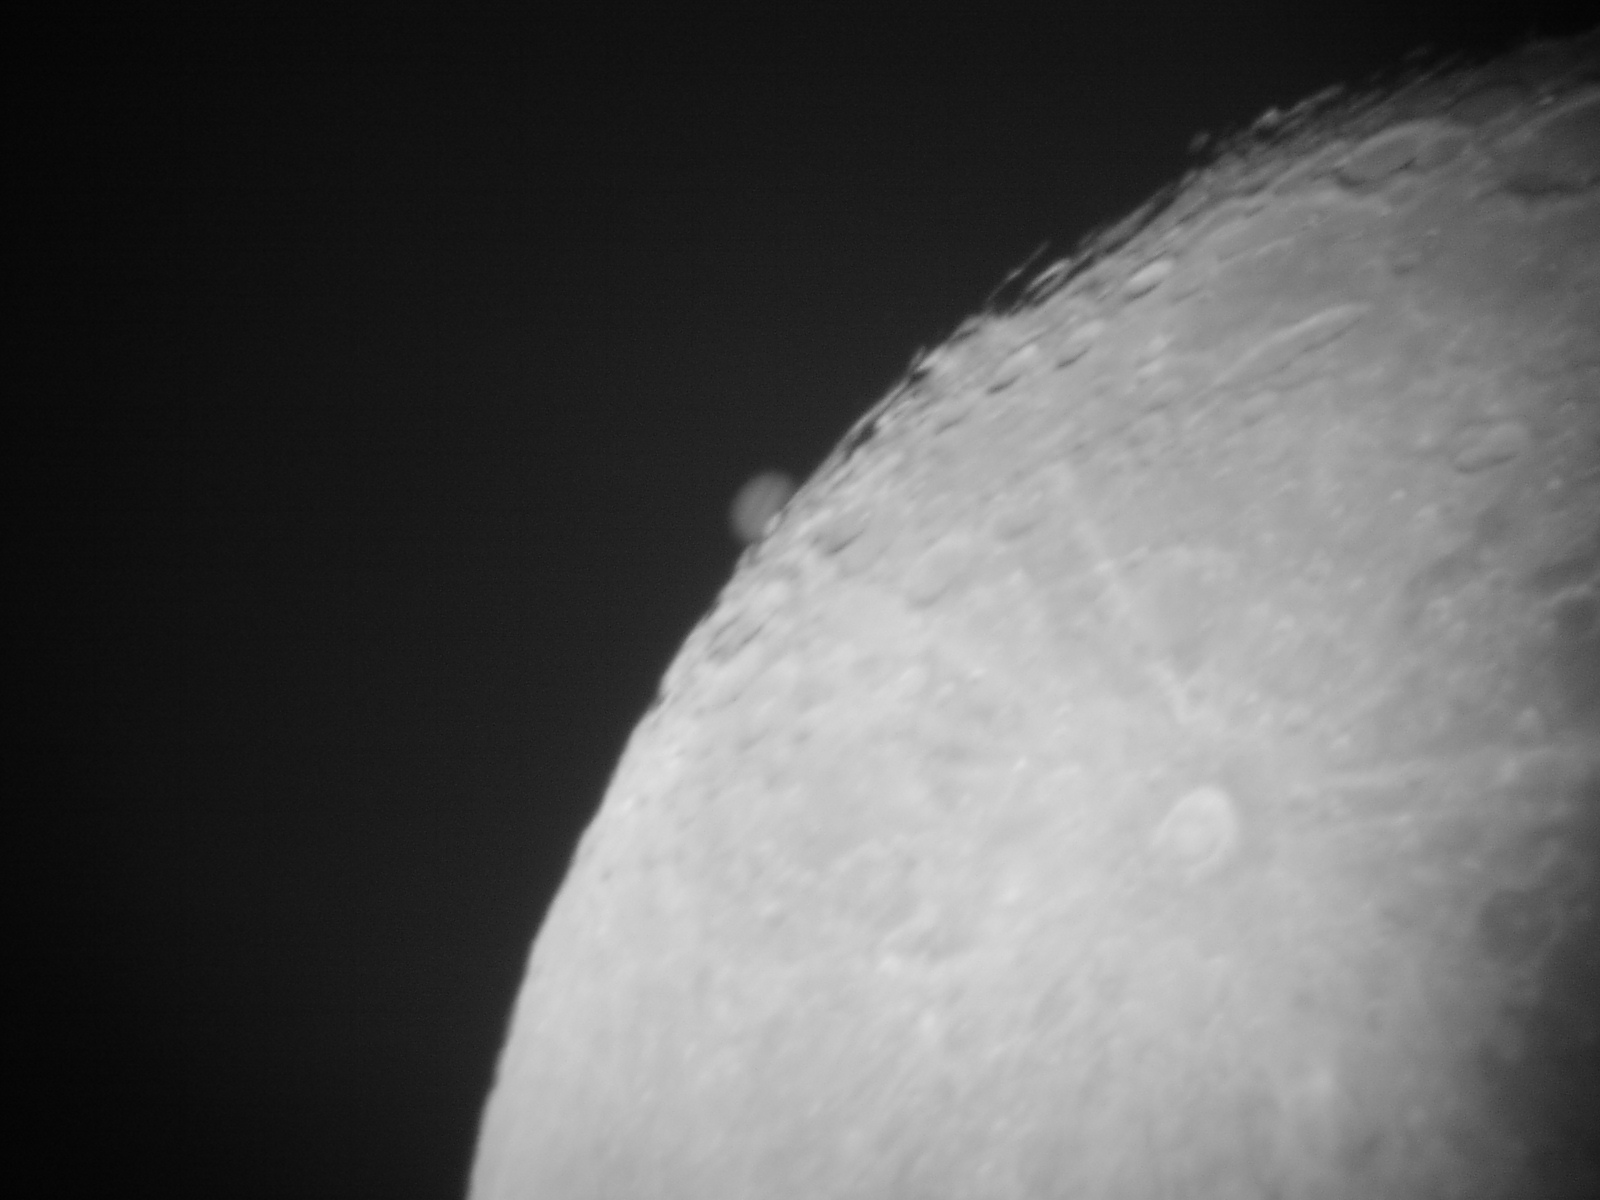 Jupiter-Lunar Grazing Occultation by John Quirk, Image 2, taken from Walton, Liverpool on Saturday, 26th January, 2002